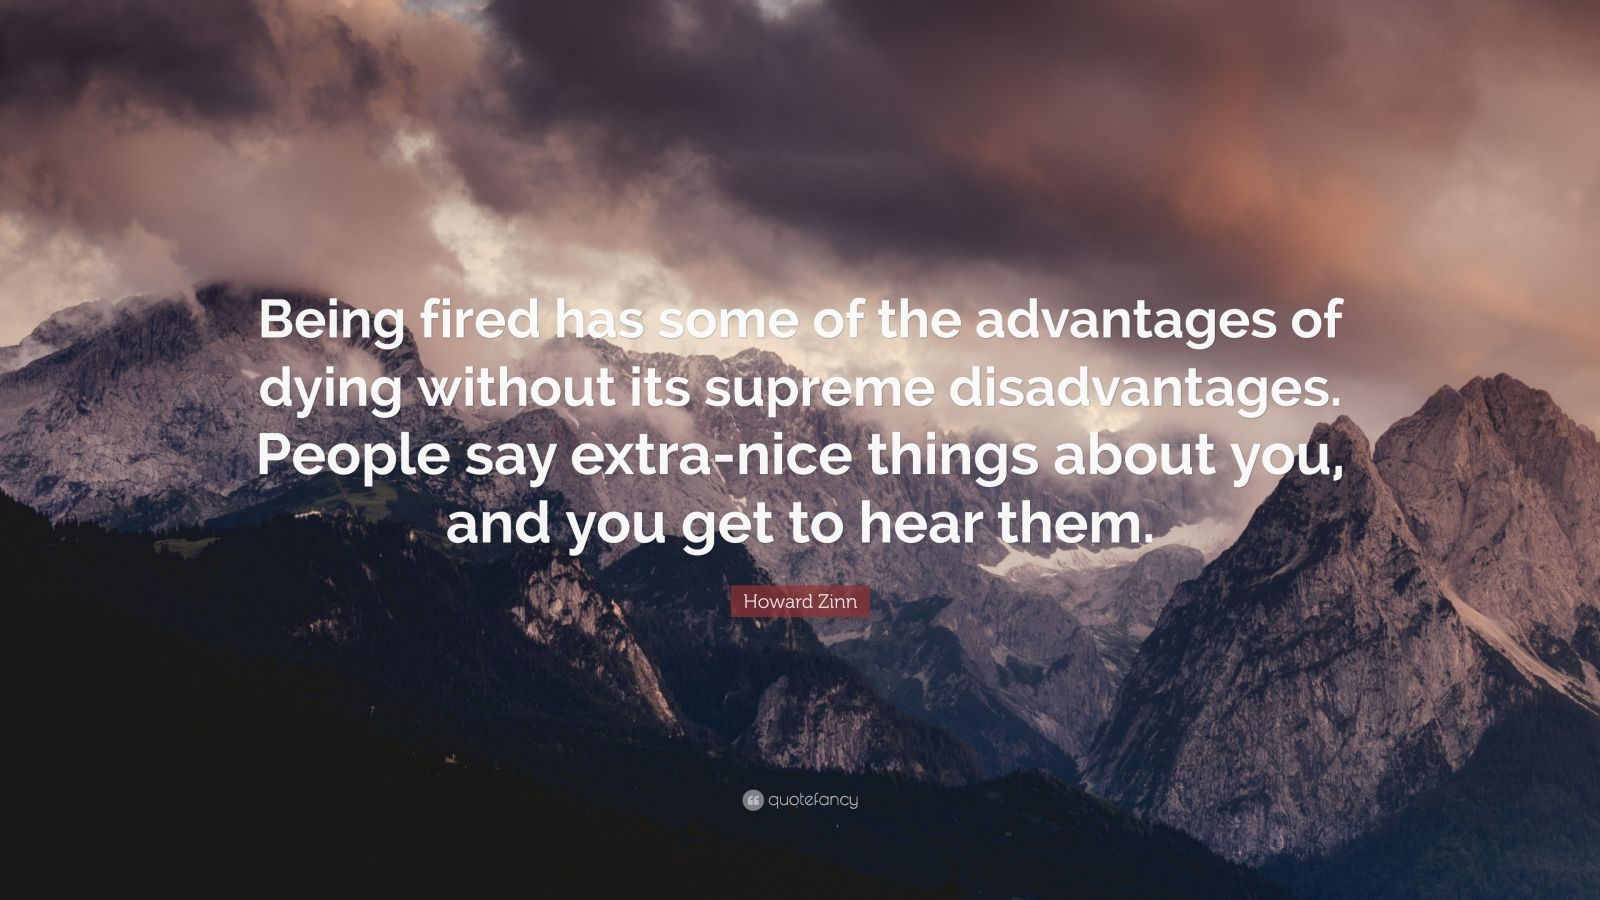 """Howard Zinn Quote: """"Being fired has some of the advantages of dying without its supreme disadvantages. People say extra-nice things about you, and you get to hear them."""""""